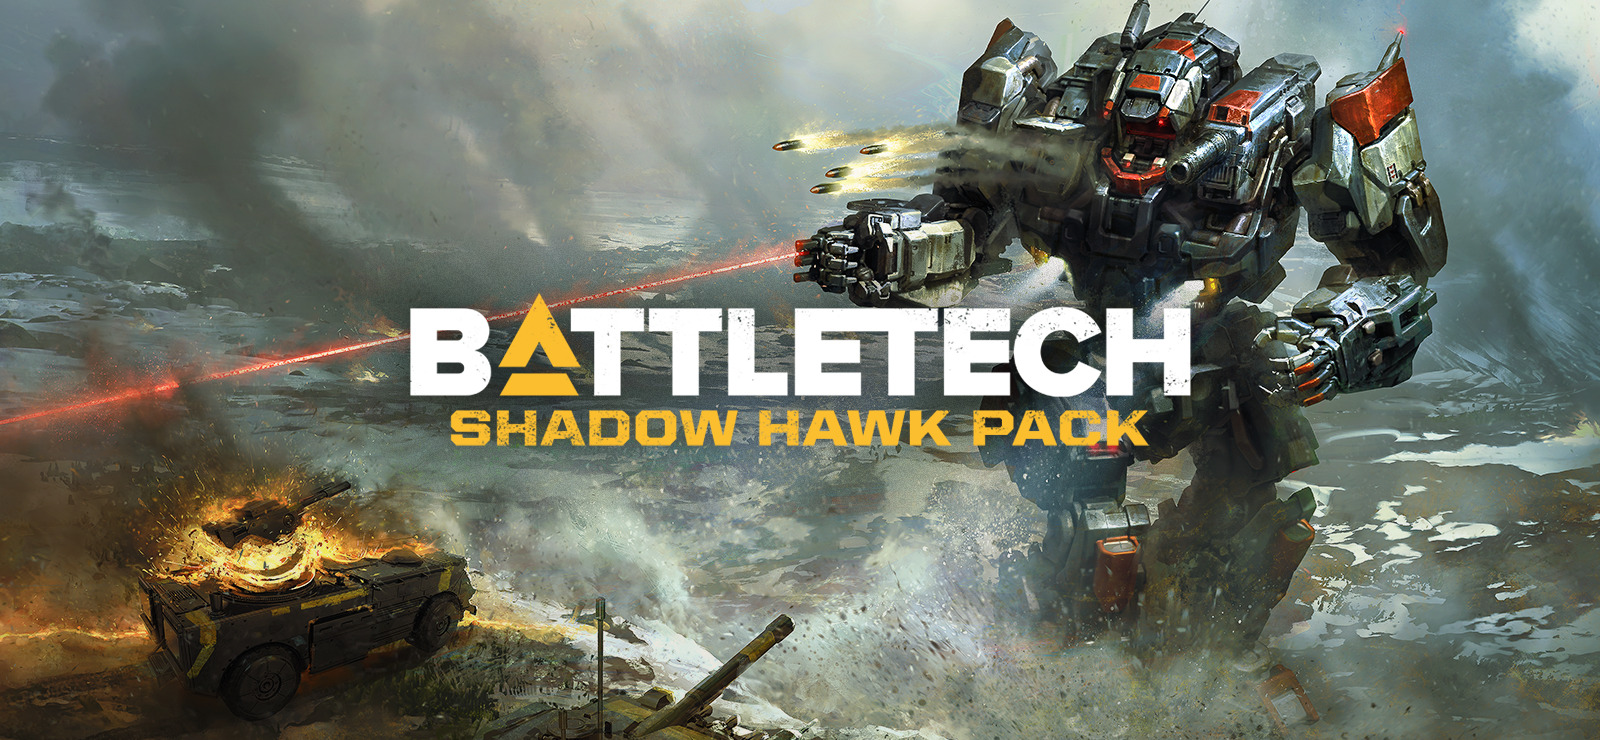 BATTLETECH - Digital Deluxe Edition GOG скачать последнюю